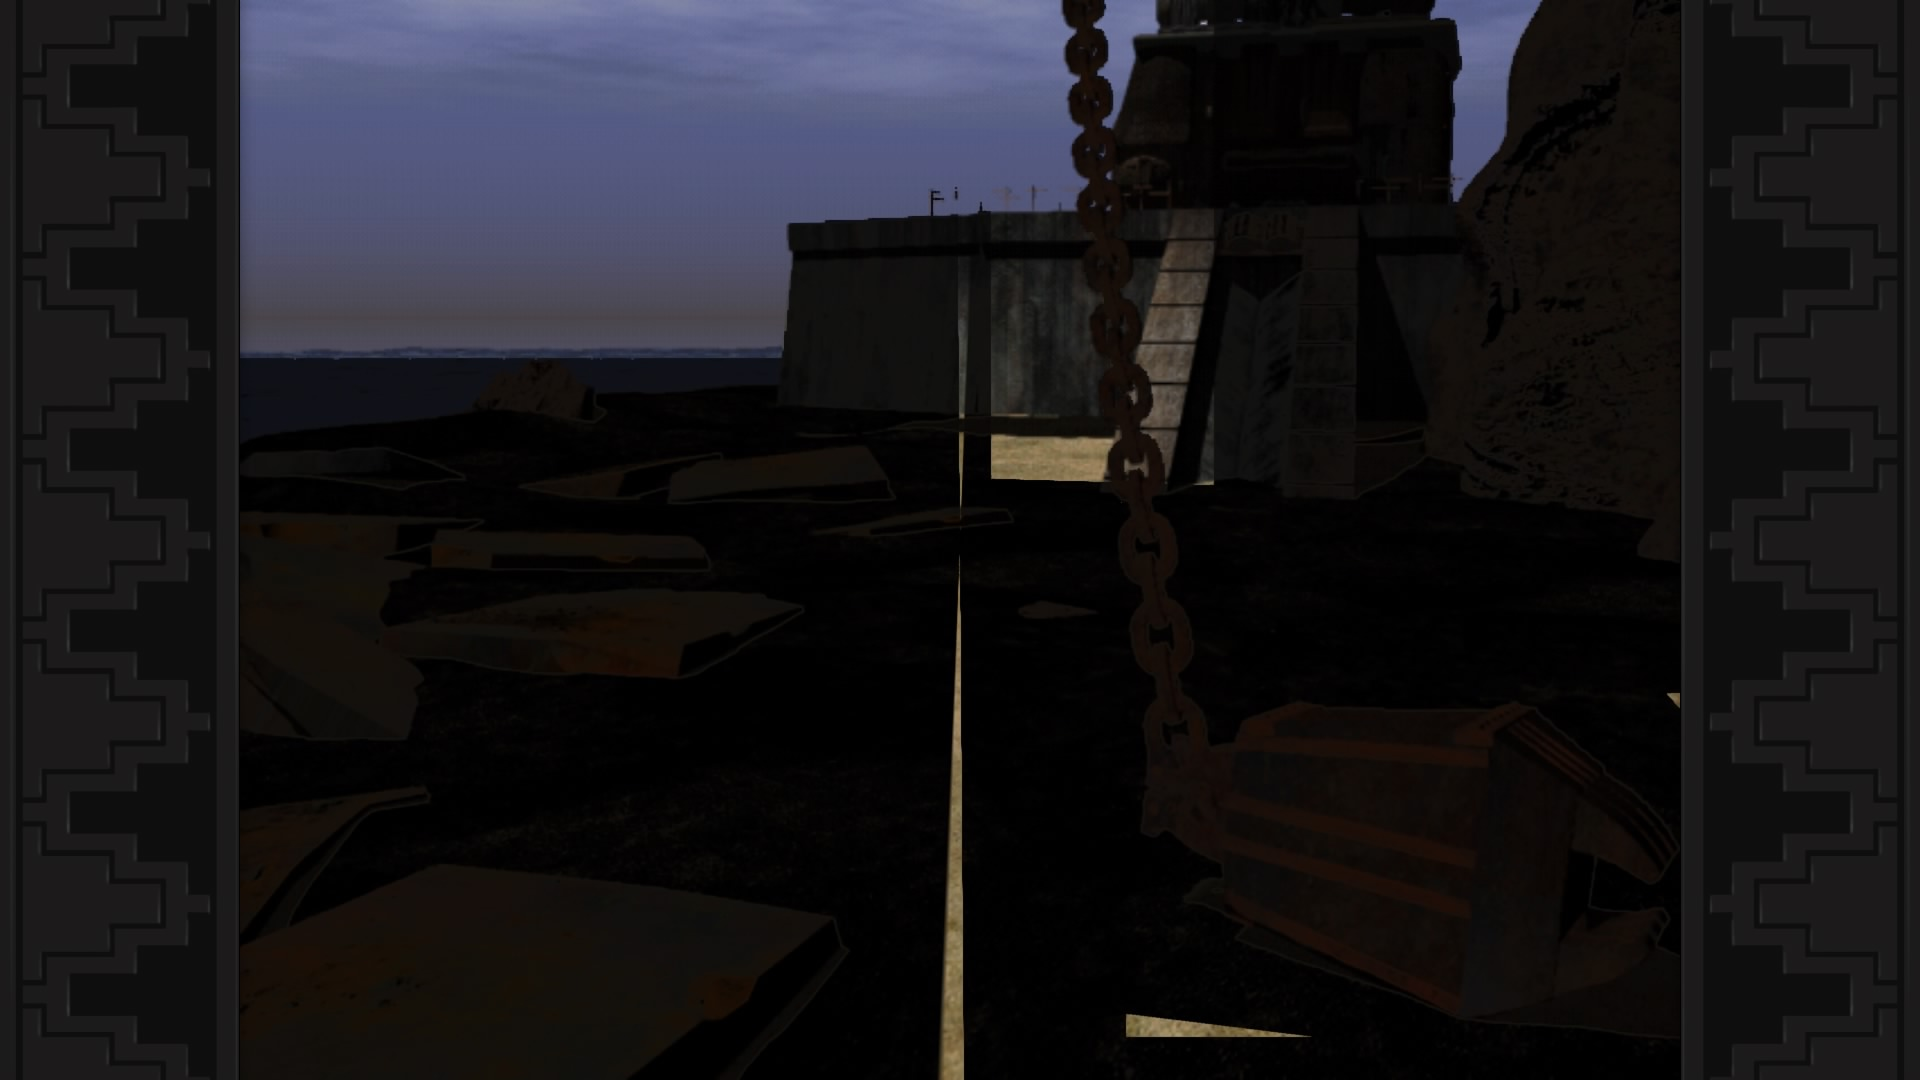 For a remastered game, Grim Fandango Remastered has some unflattering graphical issues.